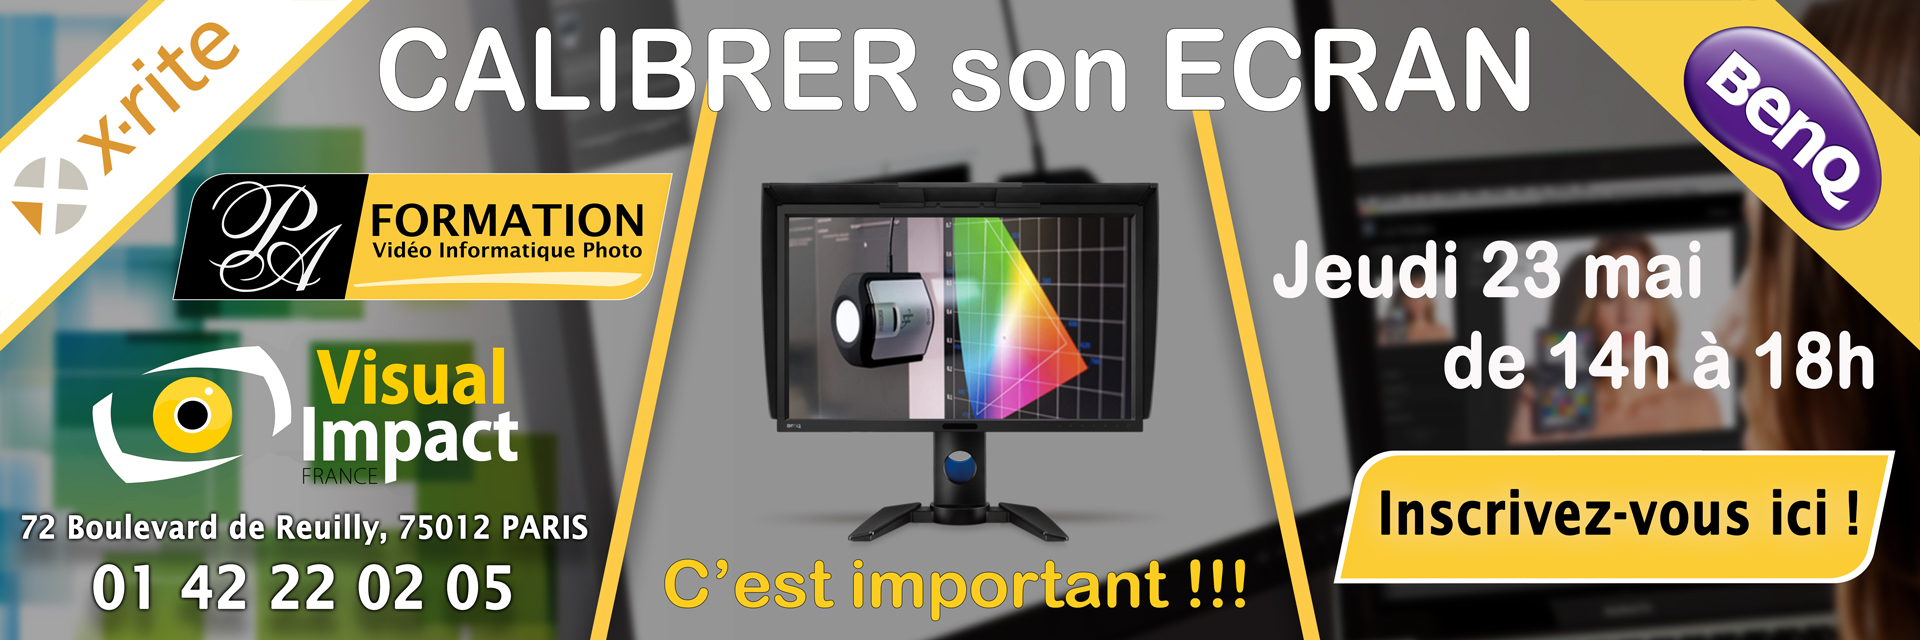 Atelier-Calibrage-xrite-benq-visualimpact-PA-FORMATION